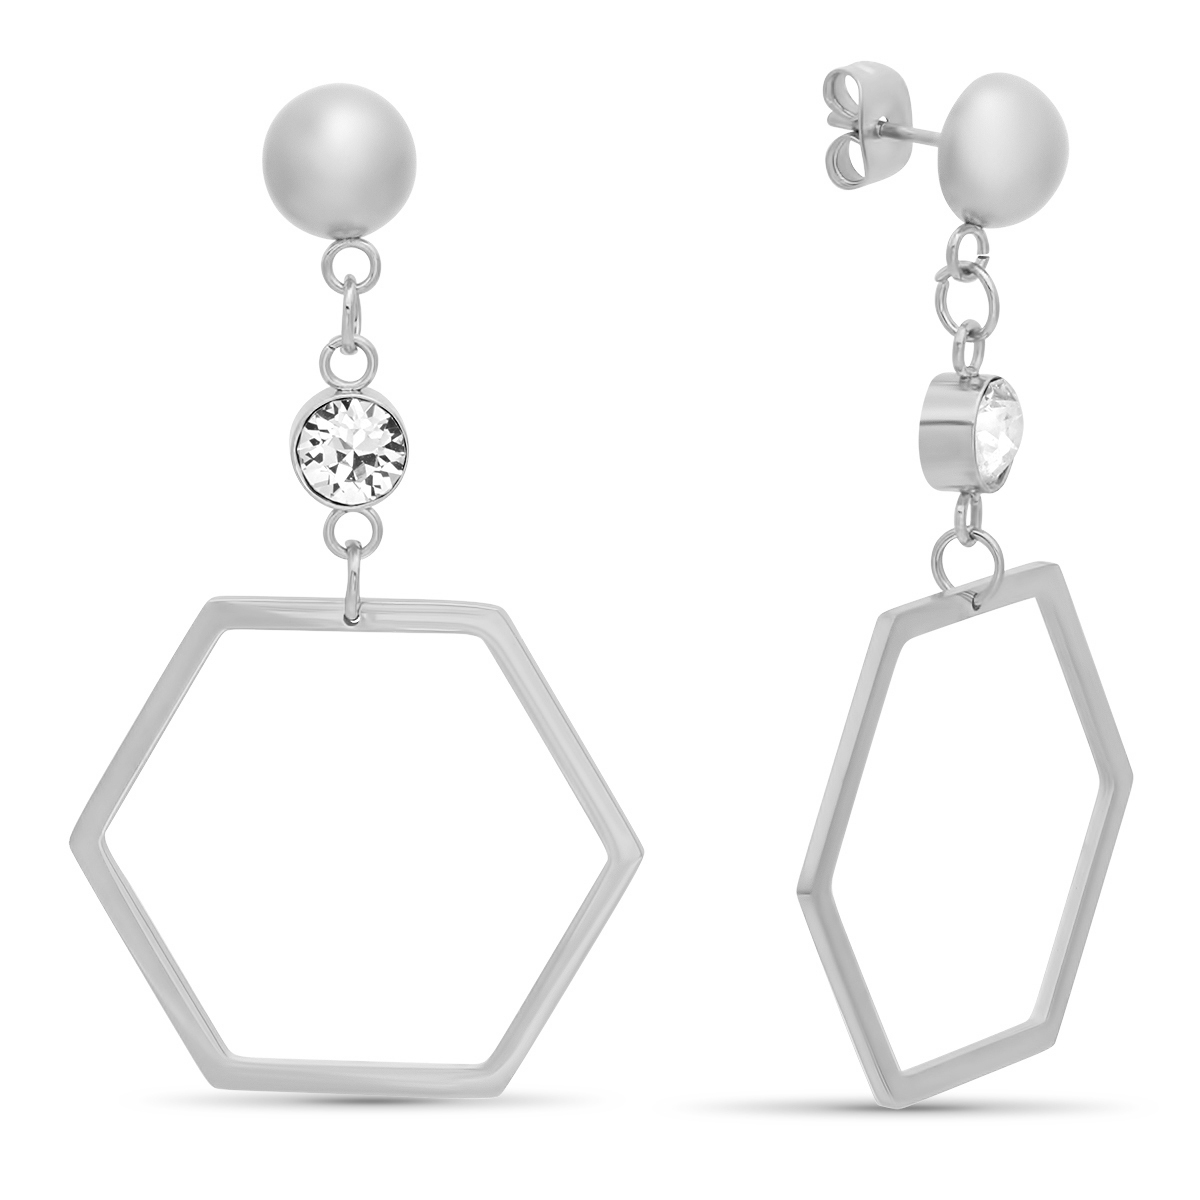 STEELTIME Stainless Steel hexagonal drop earrings adorned w Swarovski crystals